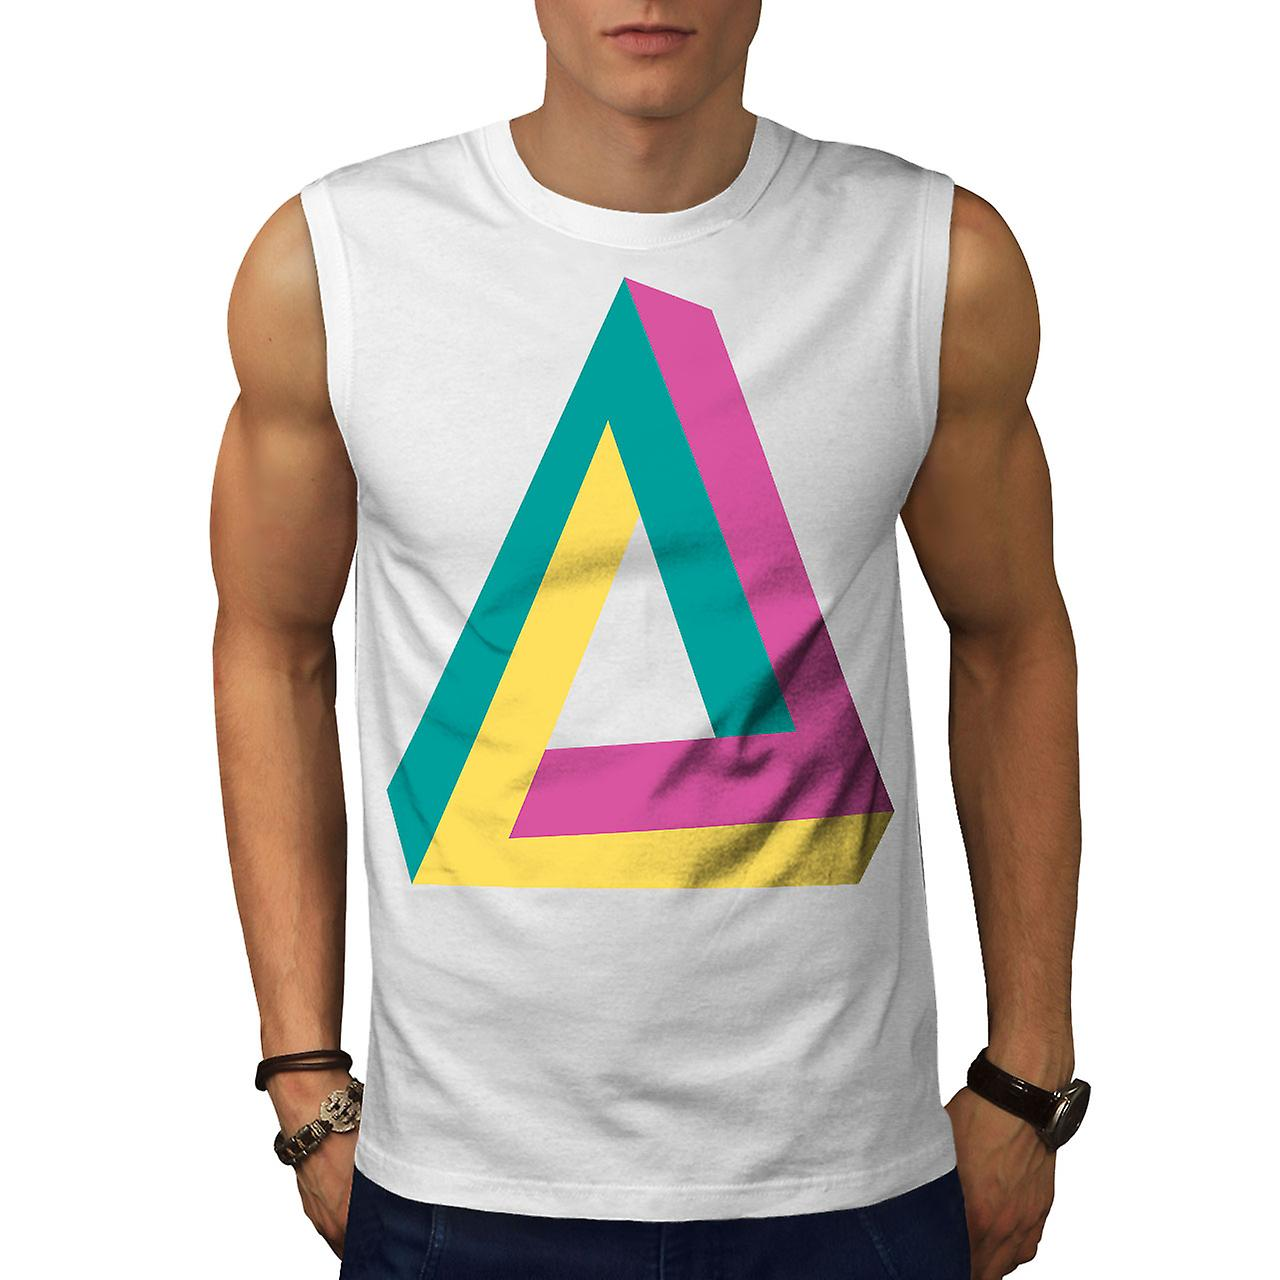 jewish single men in triangle Regular criminals were denoted by a green triangle, political prisoners by red triangles and jews by two overlapping yellow triangles (to form the star of david, the most common jewish symbol) homosexual prisoners were labels with pink triangles.